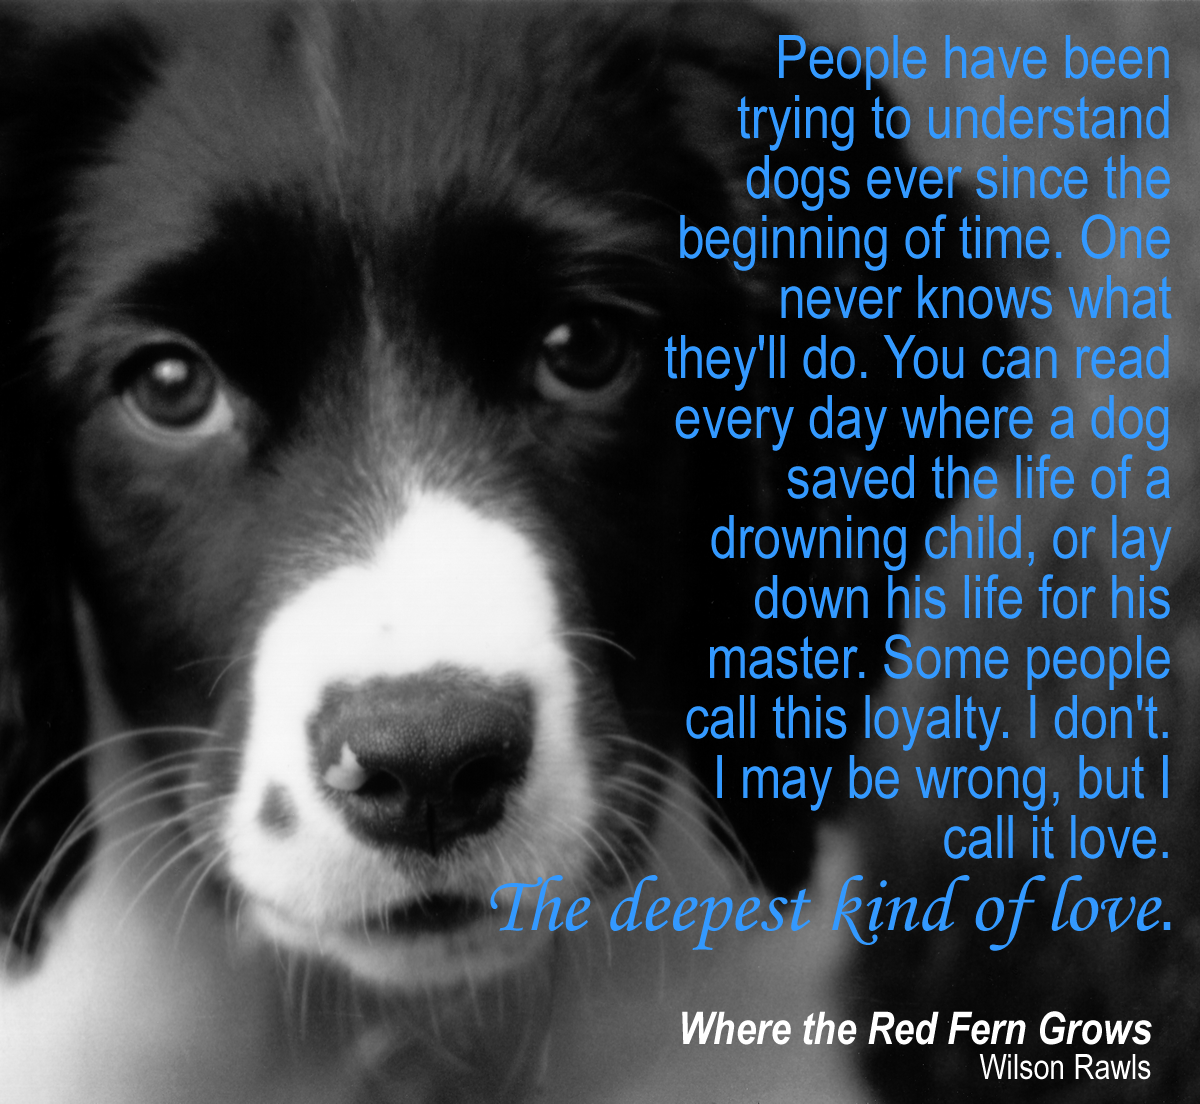 Where the Red Fern Grows Quote